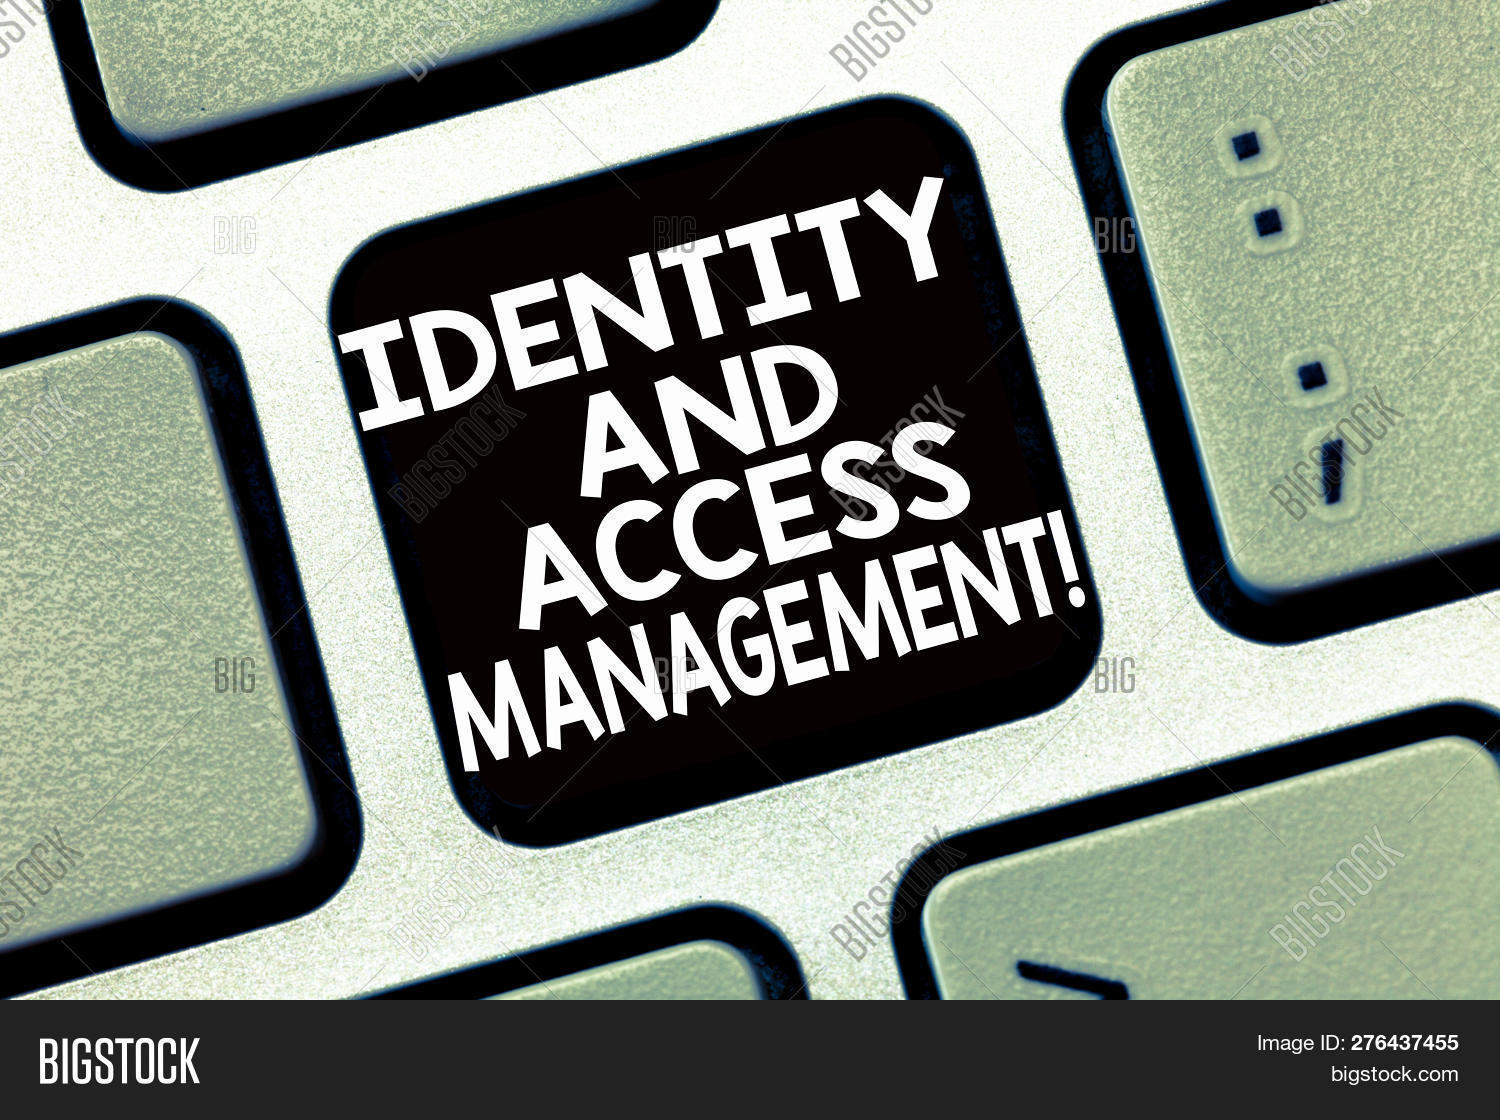 access,analysisage,analysisagement,analysisager,antivirus,application,attack,authorization,business,click,closed,code,communication,computer,computing,control,crack,crime,cyber,cyberspace,data,digital,encryption,hacker,iam,identification,identity,information,internet,key,lock,network,online,password,protect,protection,safe,safety,secure,security,service,system,technology,virtual,virtualization,virus,web